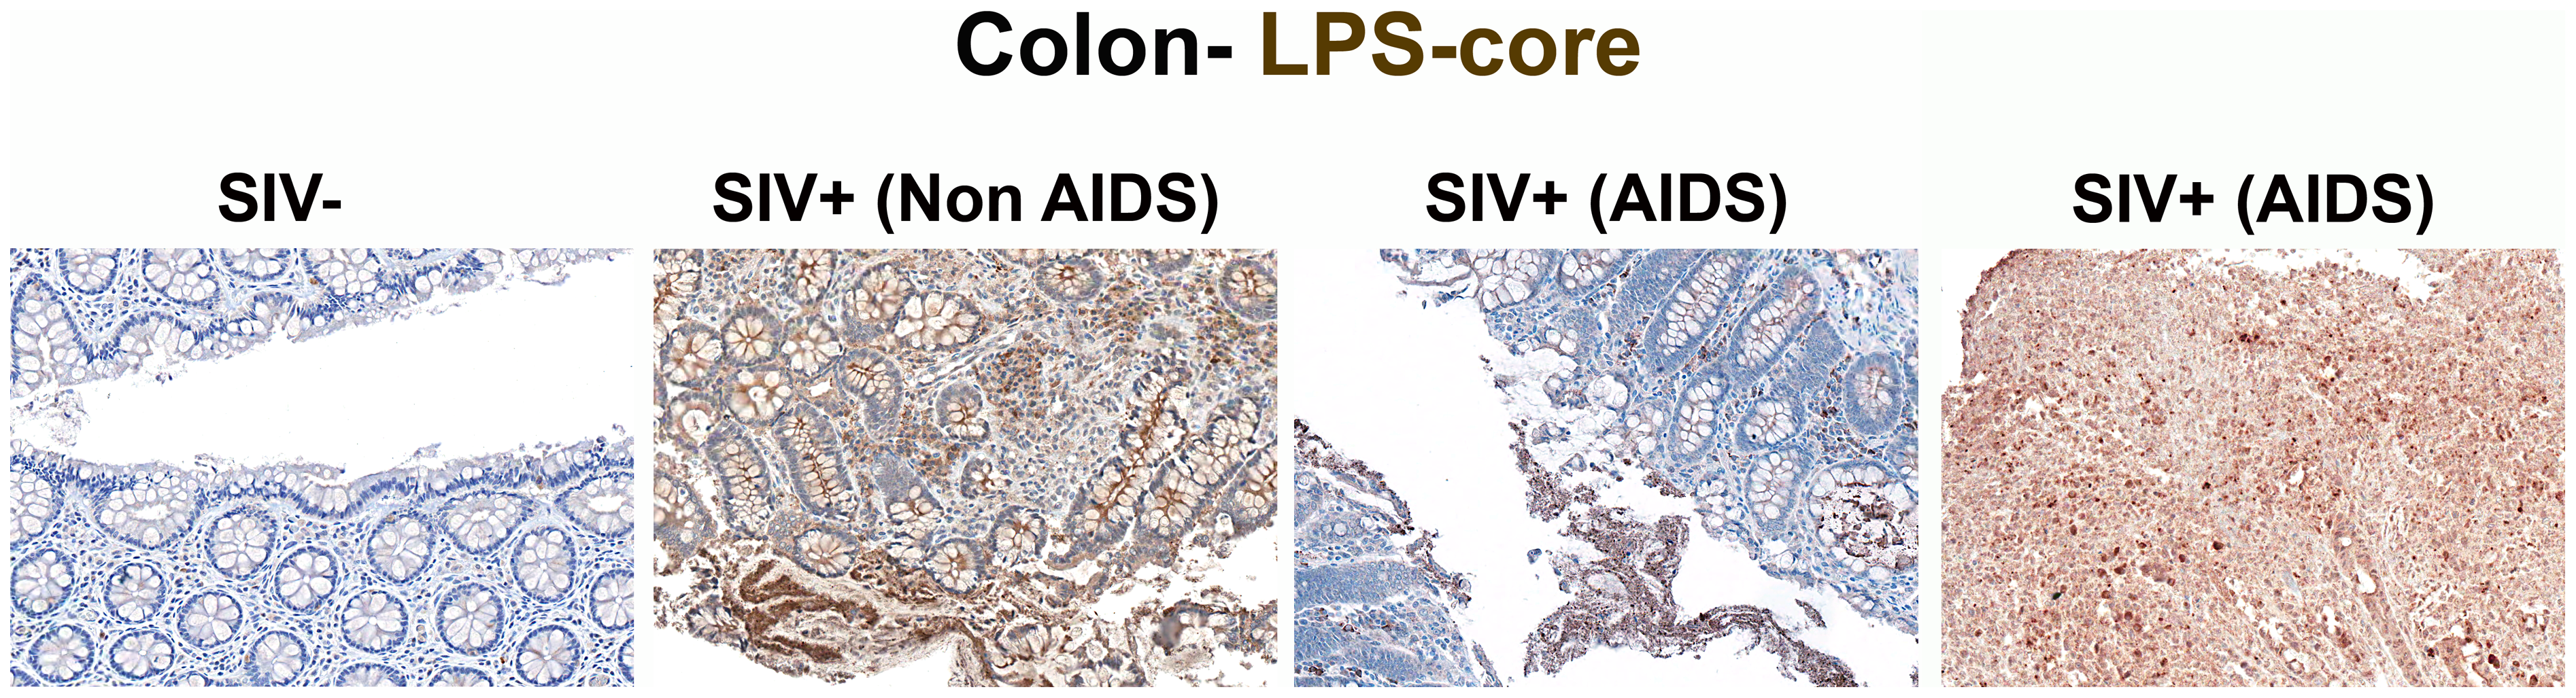 Identification of microbial translocation in large bowel of chronically SIV<sup>+</sup> RMs.